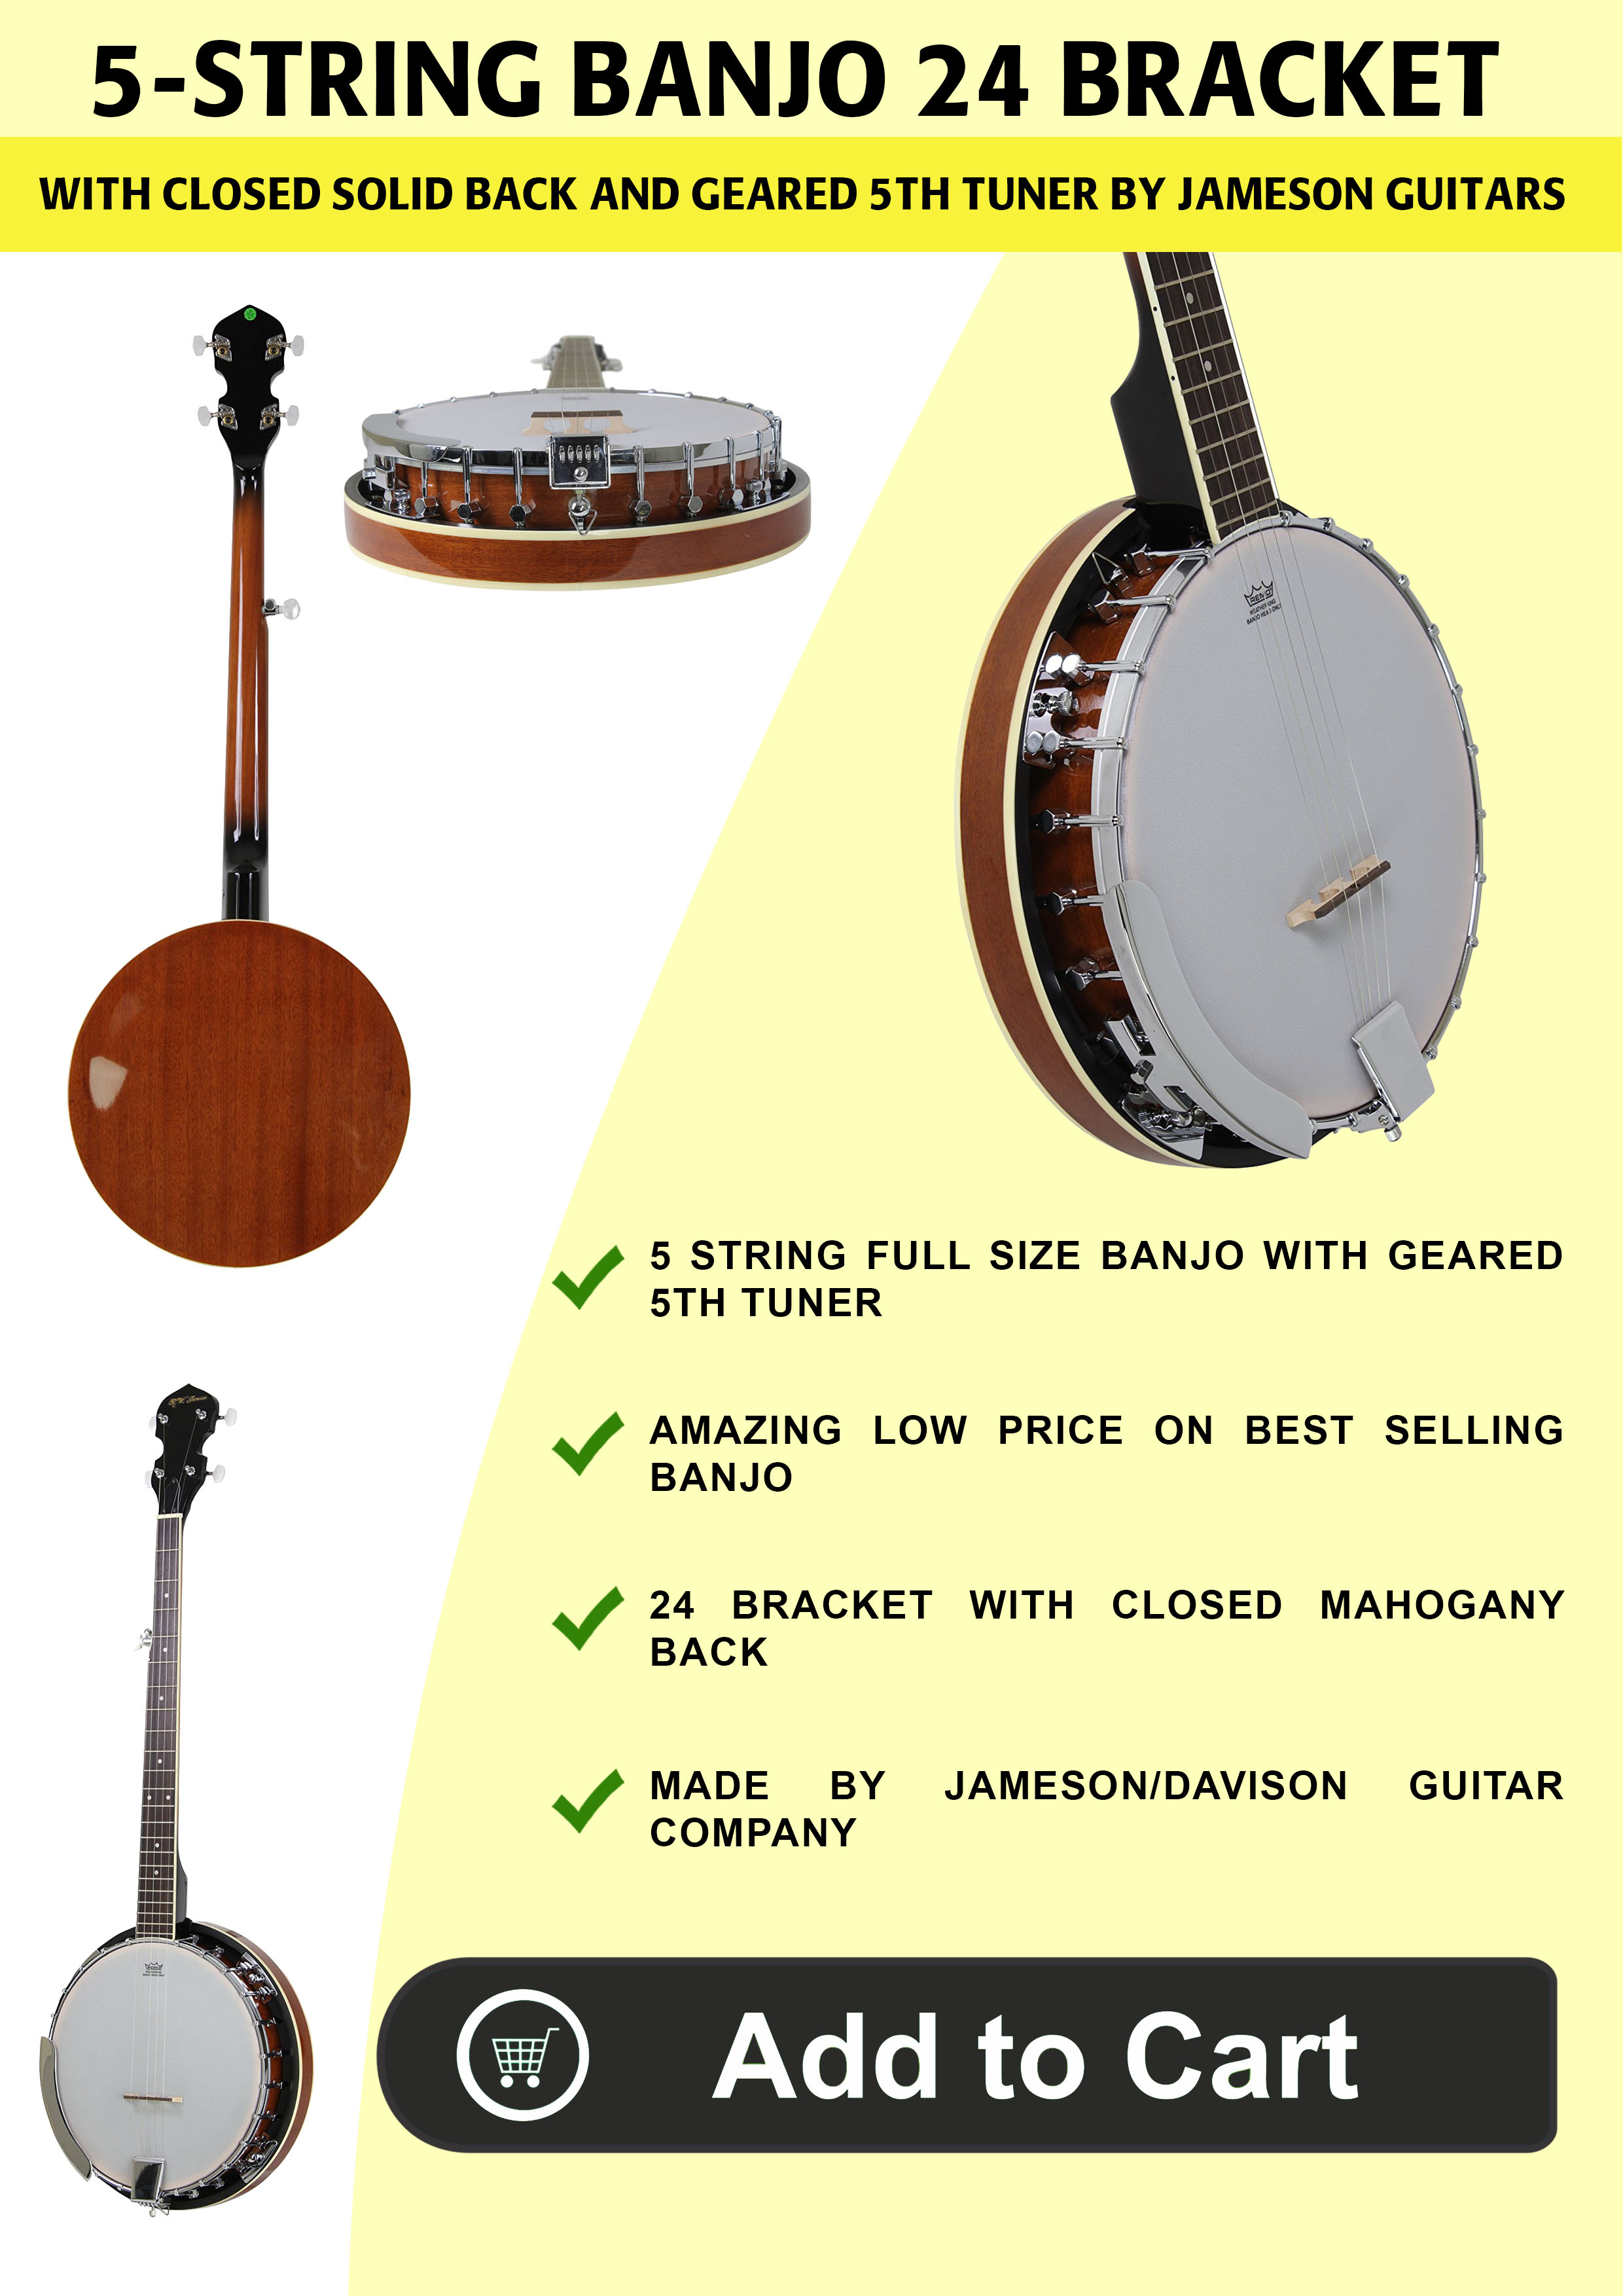 Best Banjo 2017 Reviews - Buying Guide For Beginners